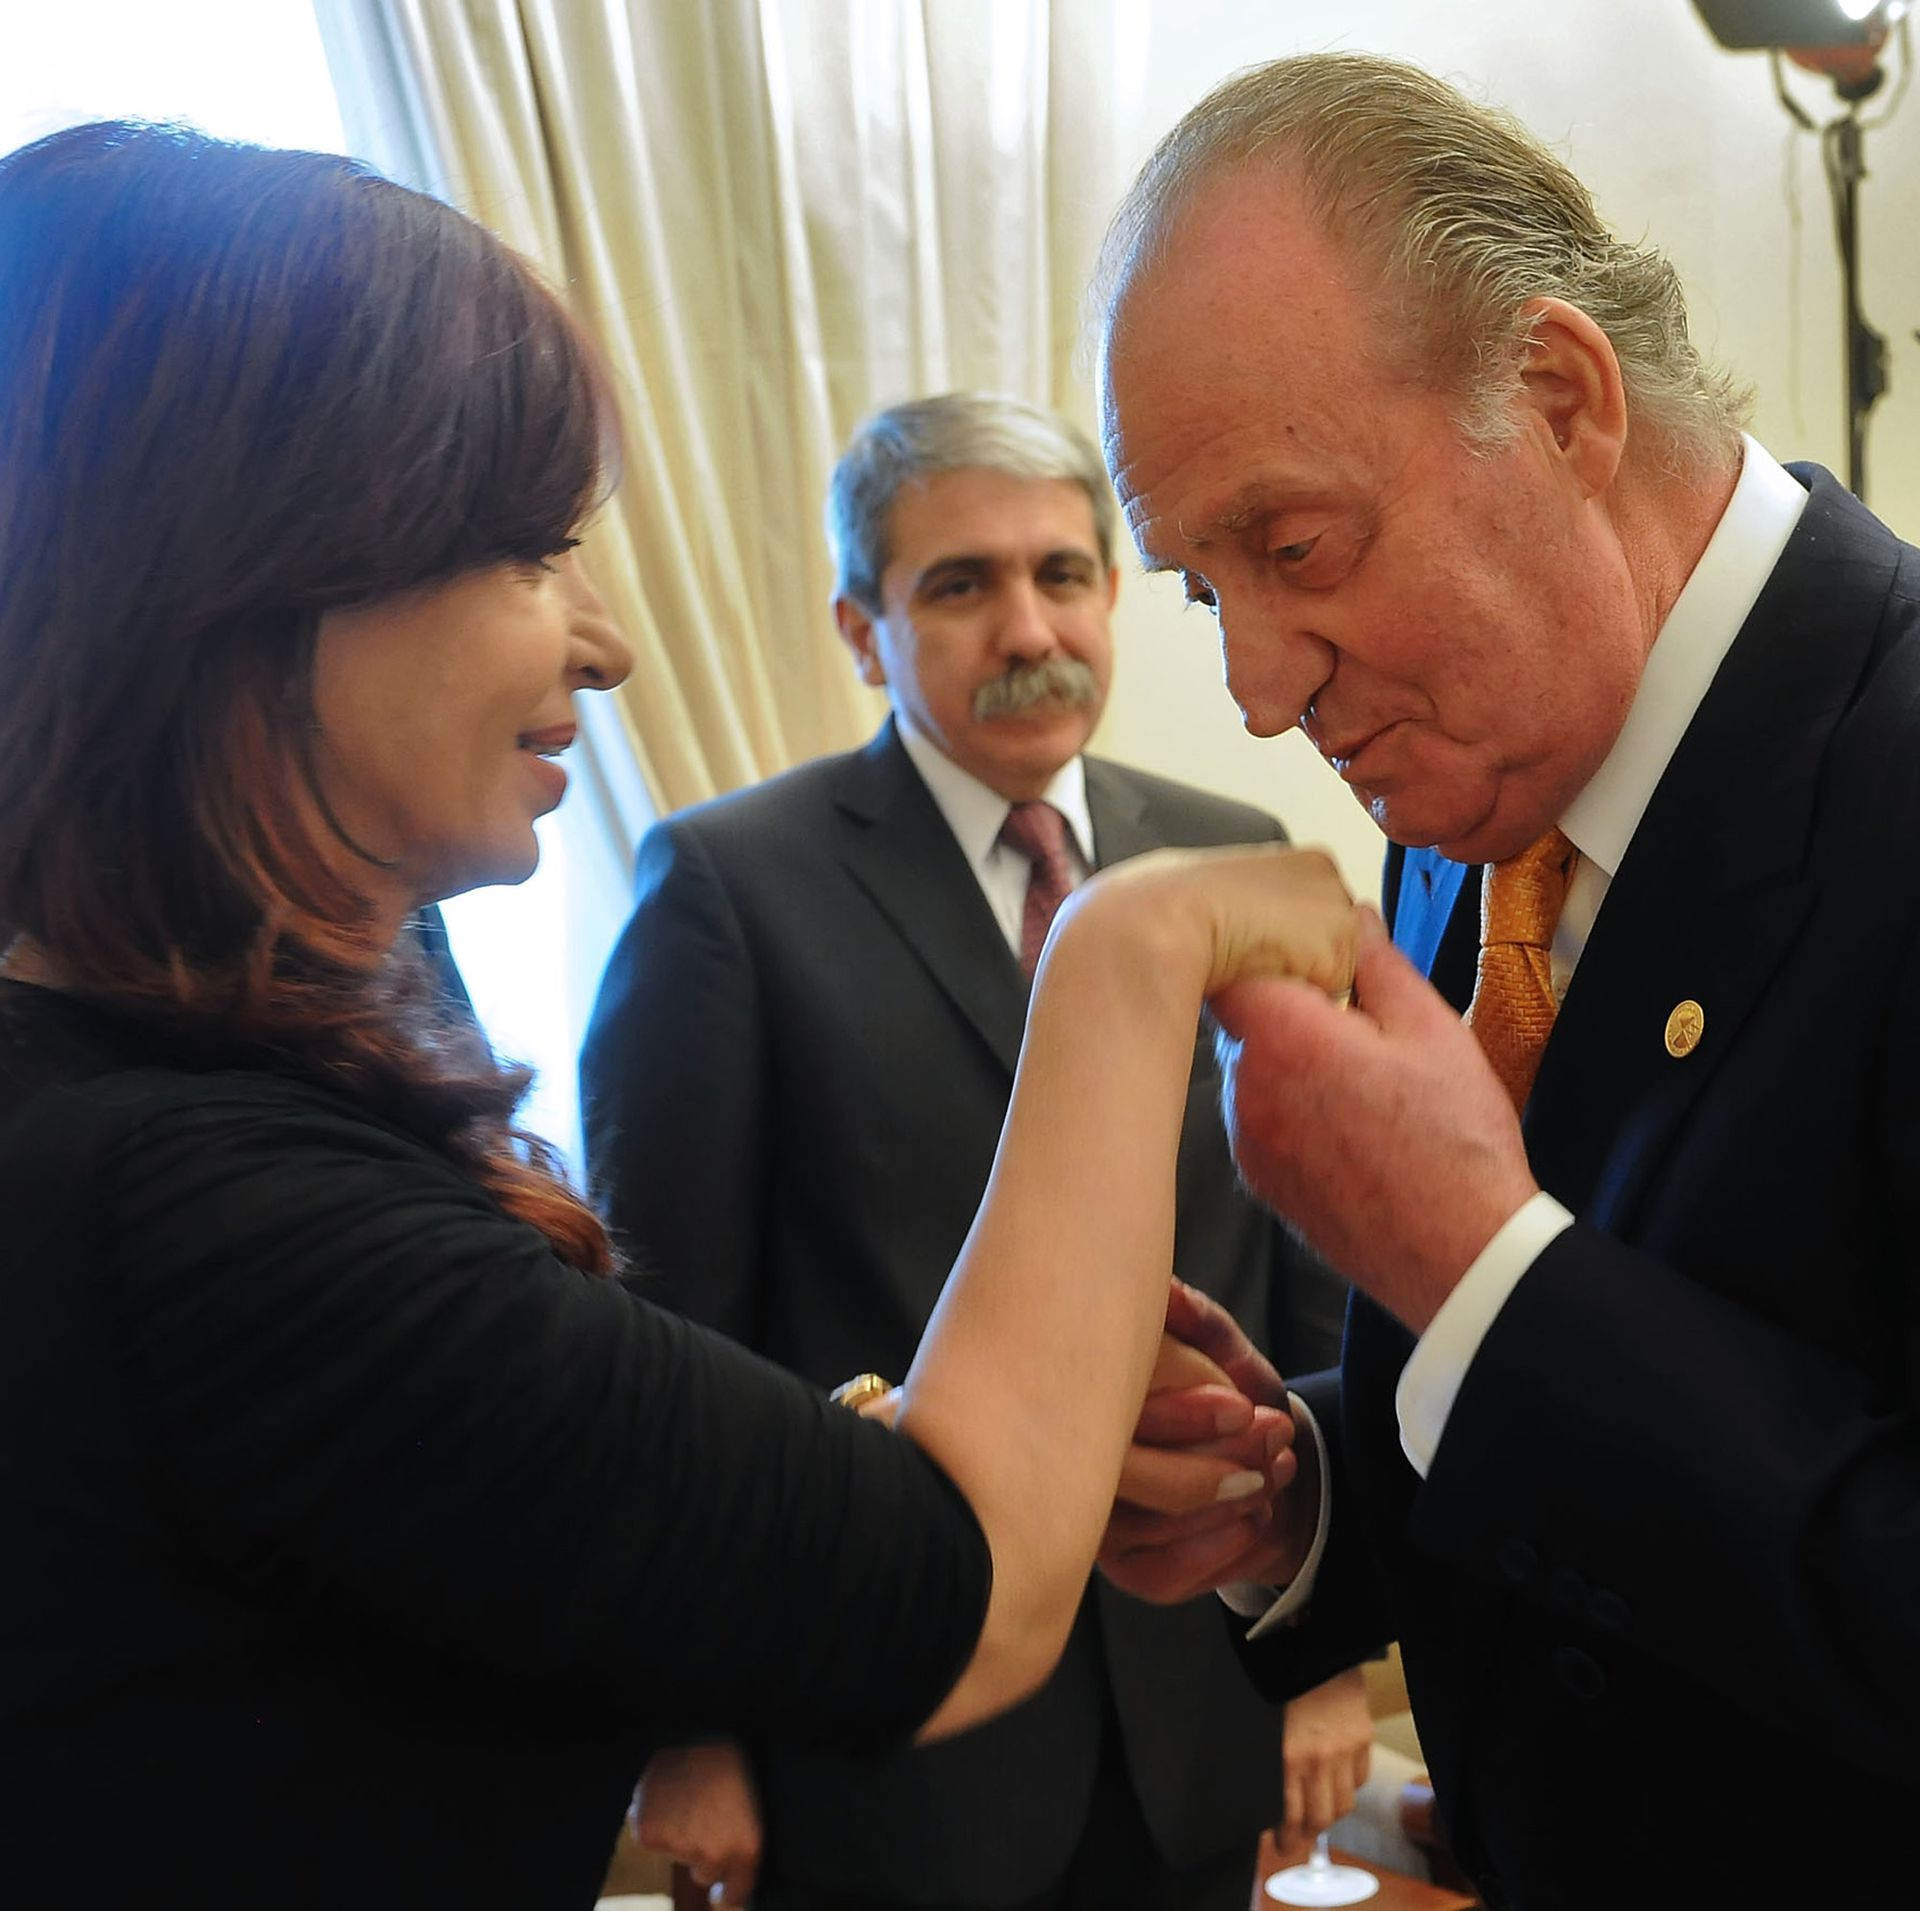 Cristina Fernández de Kirchner receives the greeting of King Juan Carlos; It was in the middle of the first denunciations against Ricardo Jaime that spilled the bilateral relations between Argentina and Spain